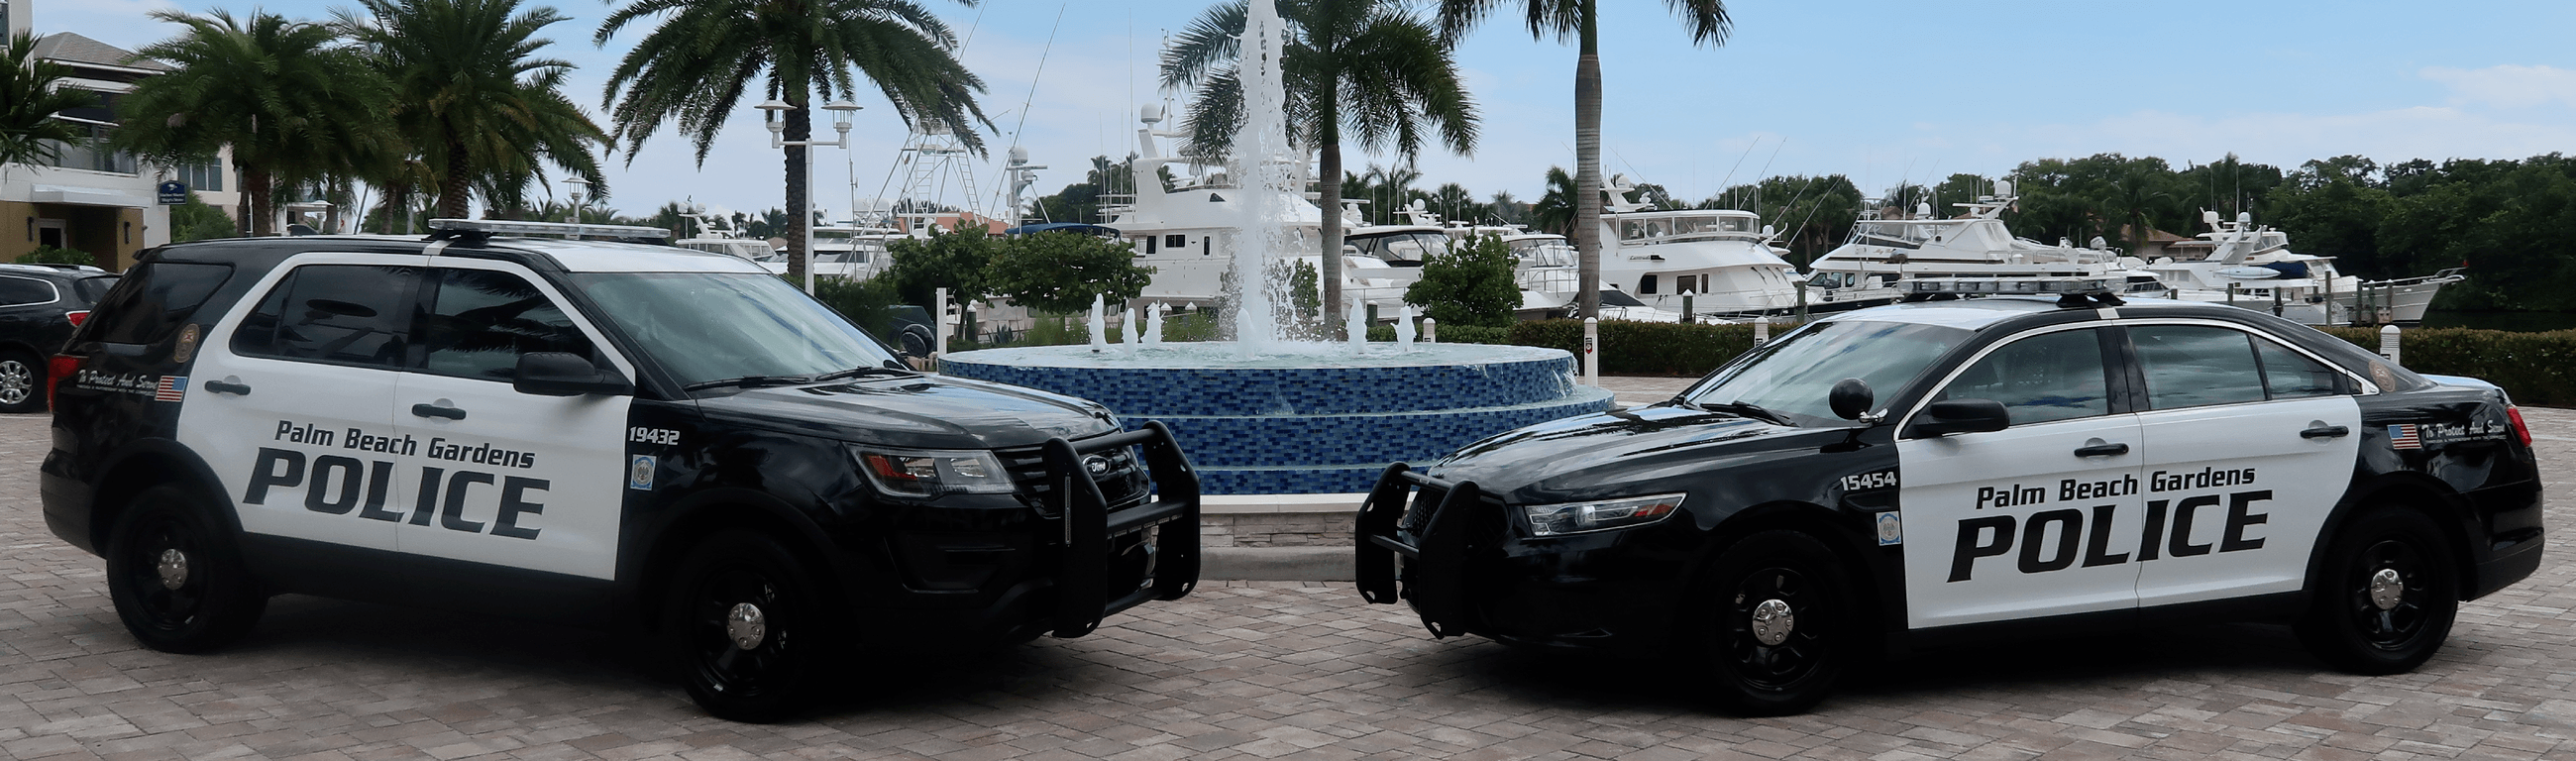 Police vehicles- new and old